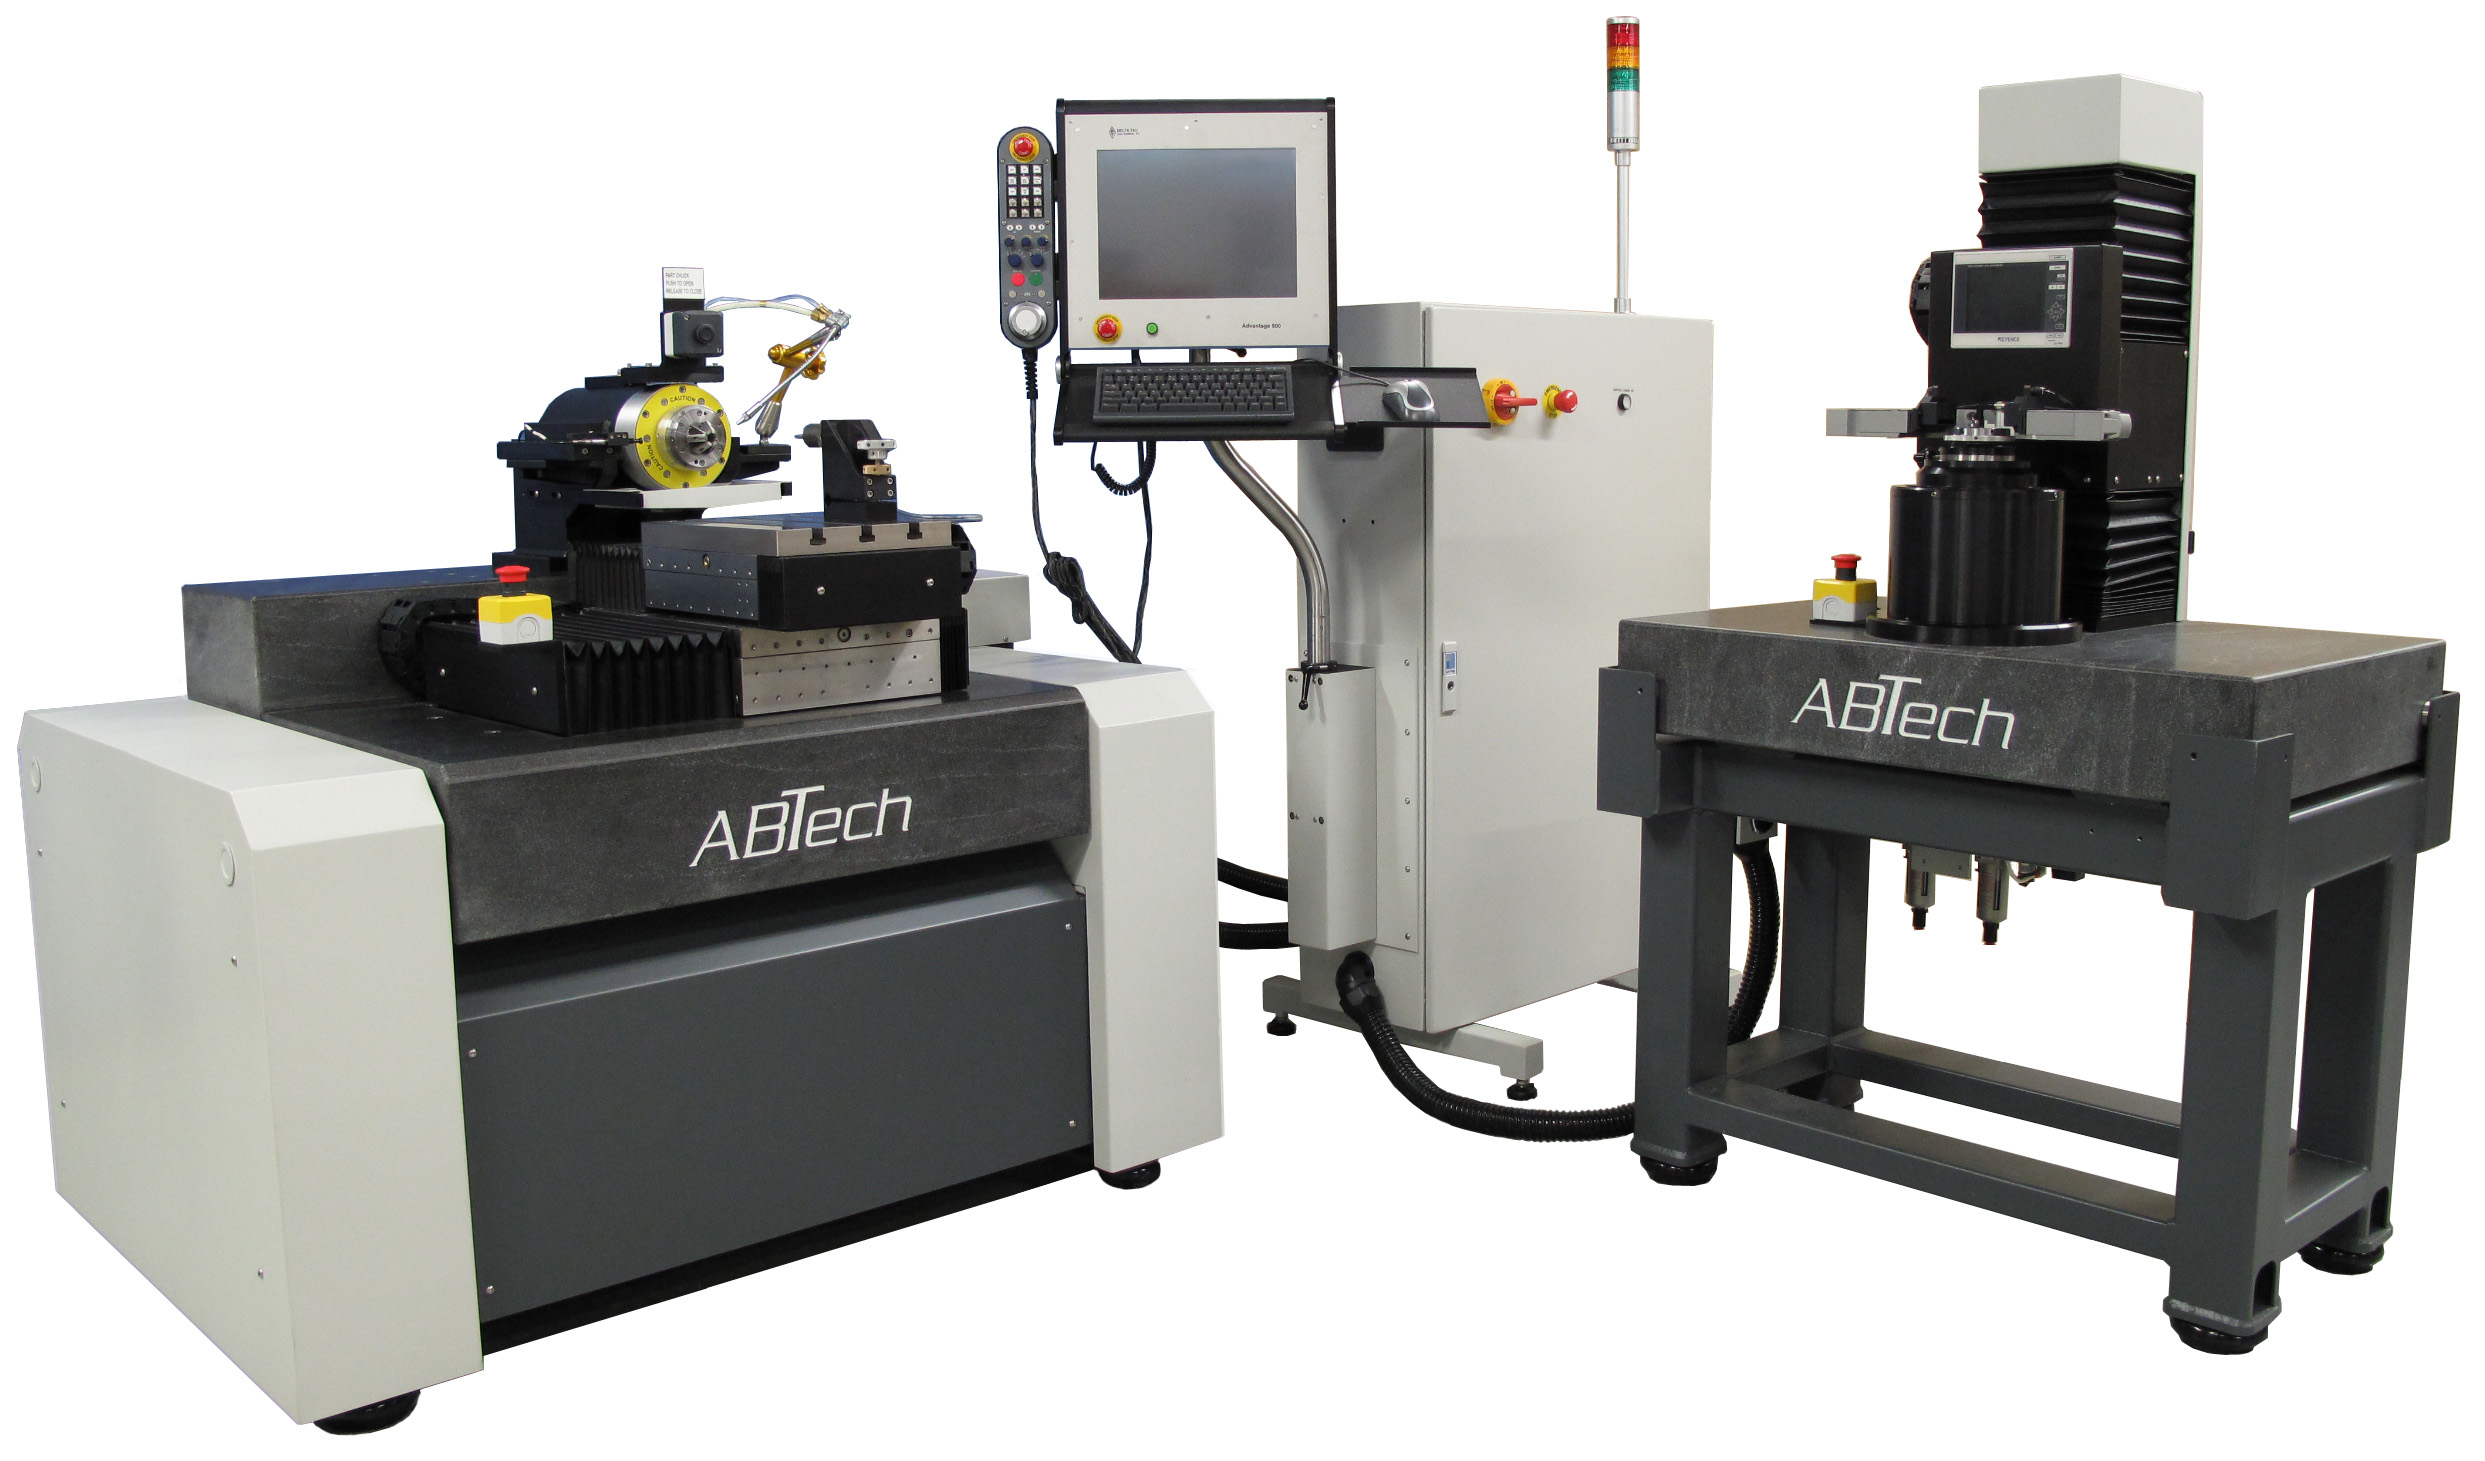 Multi-axis air bearing lathe and metrology work cell